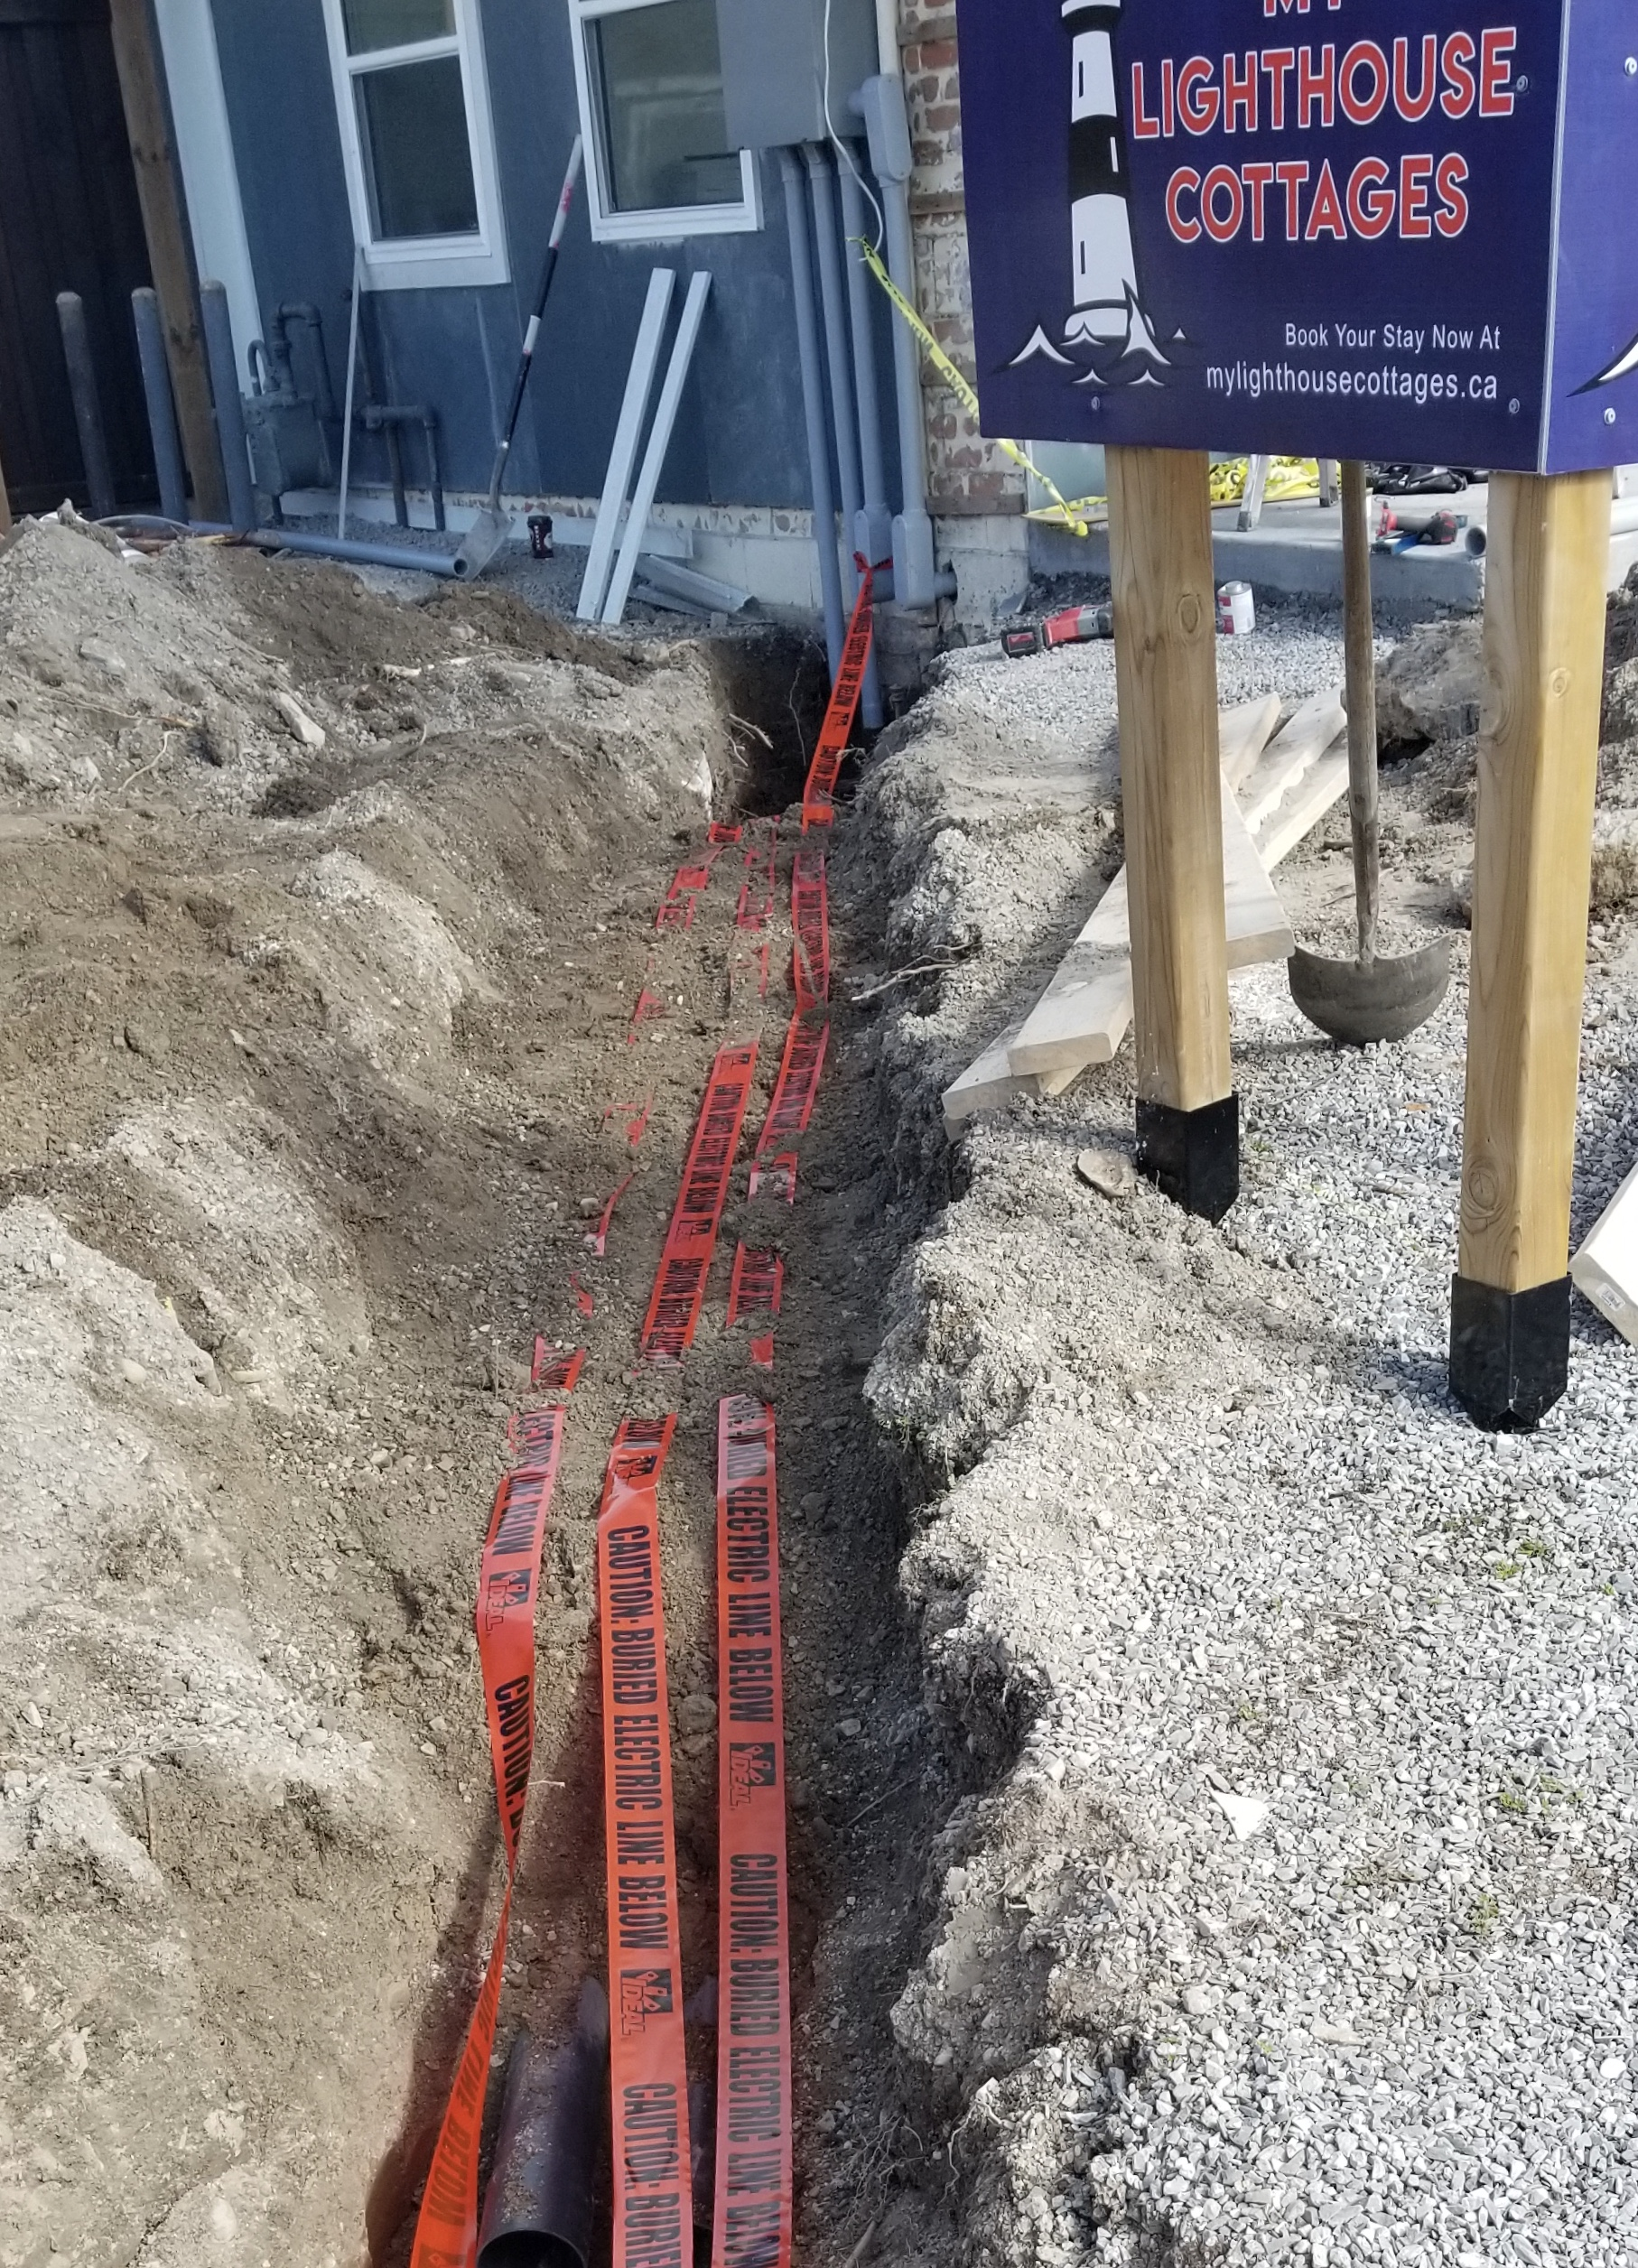 Underground Wiring for Cottages